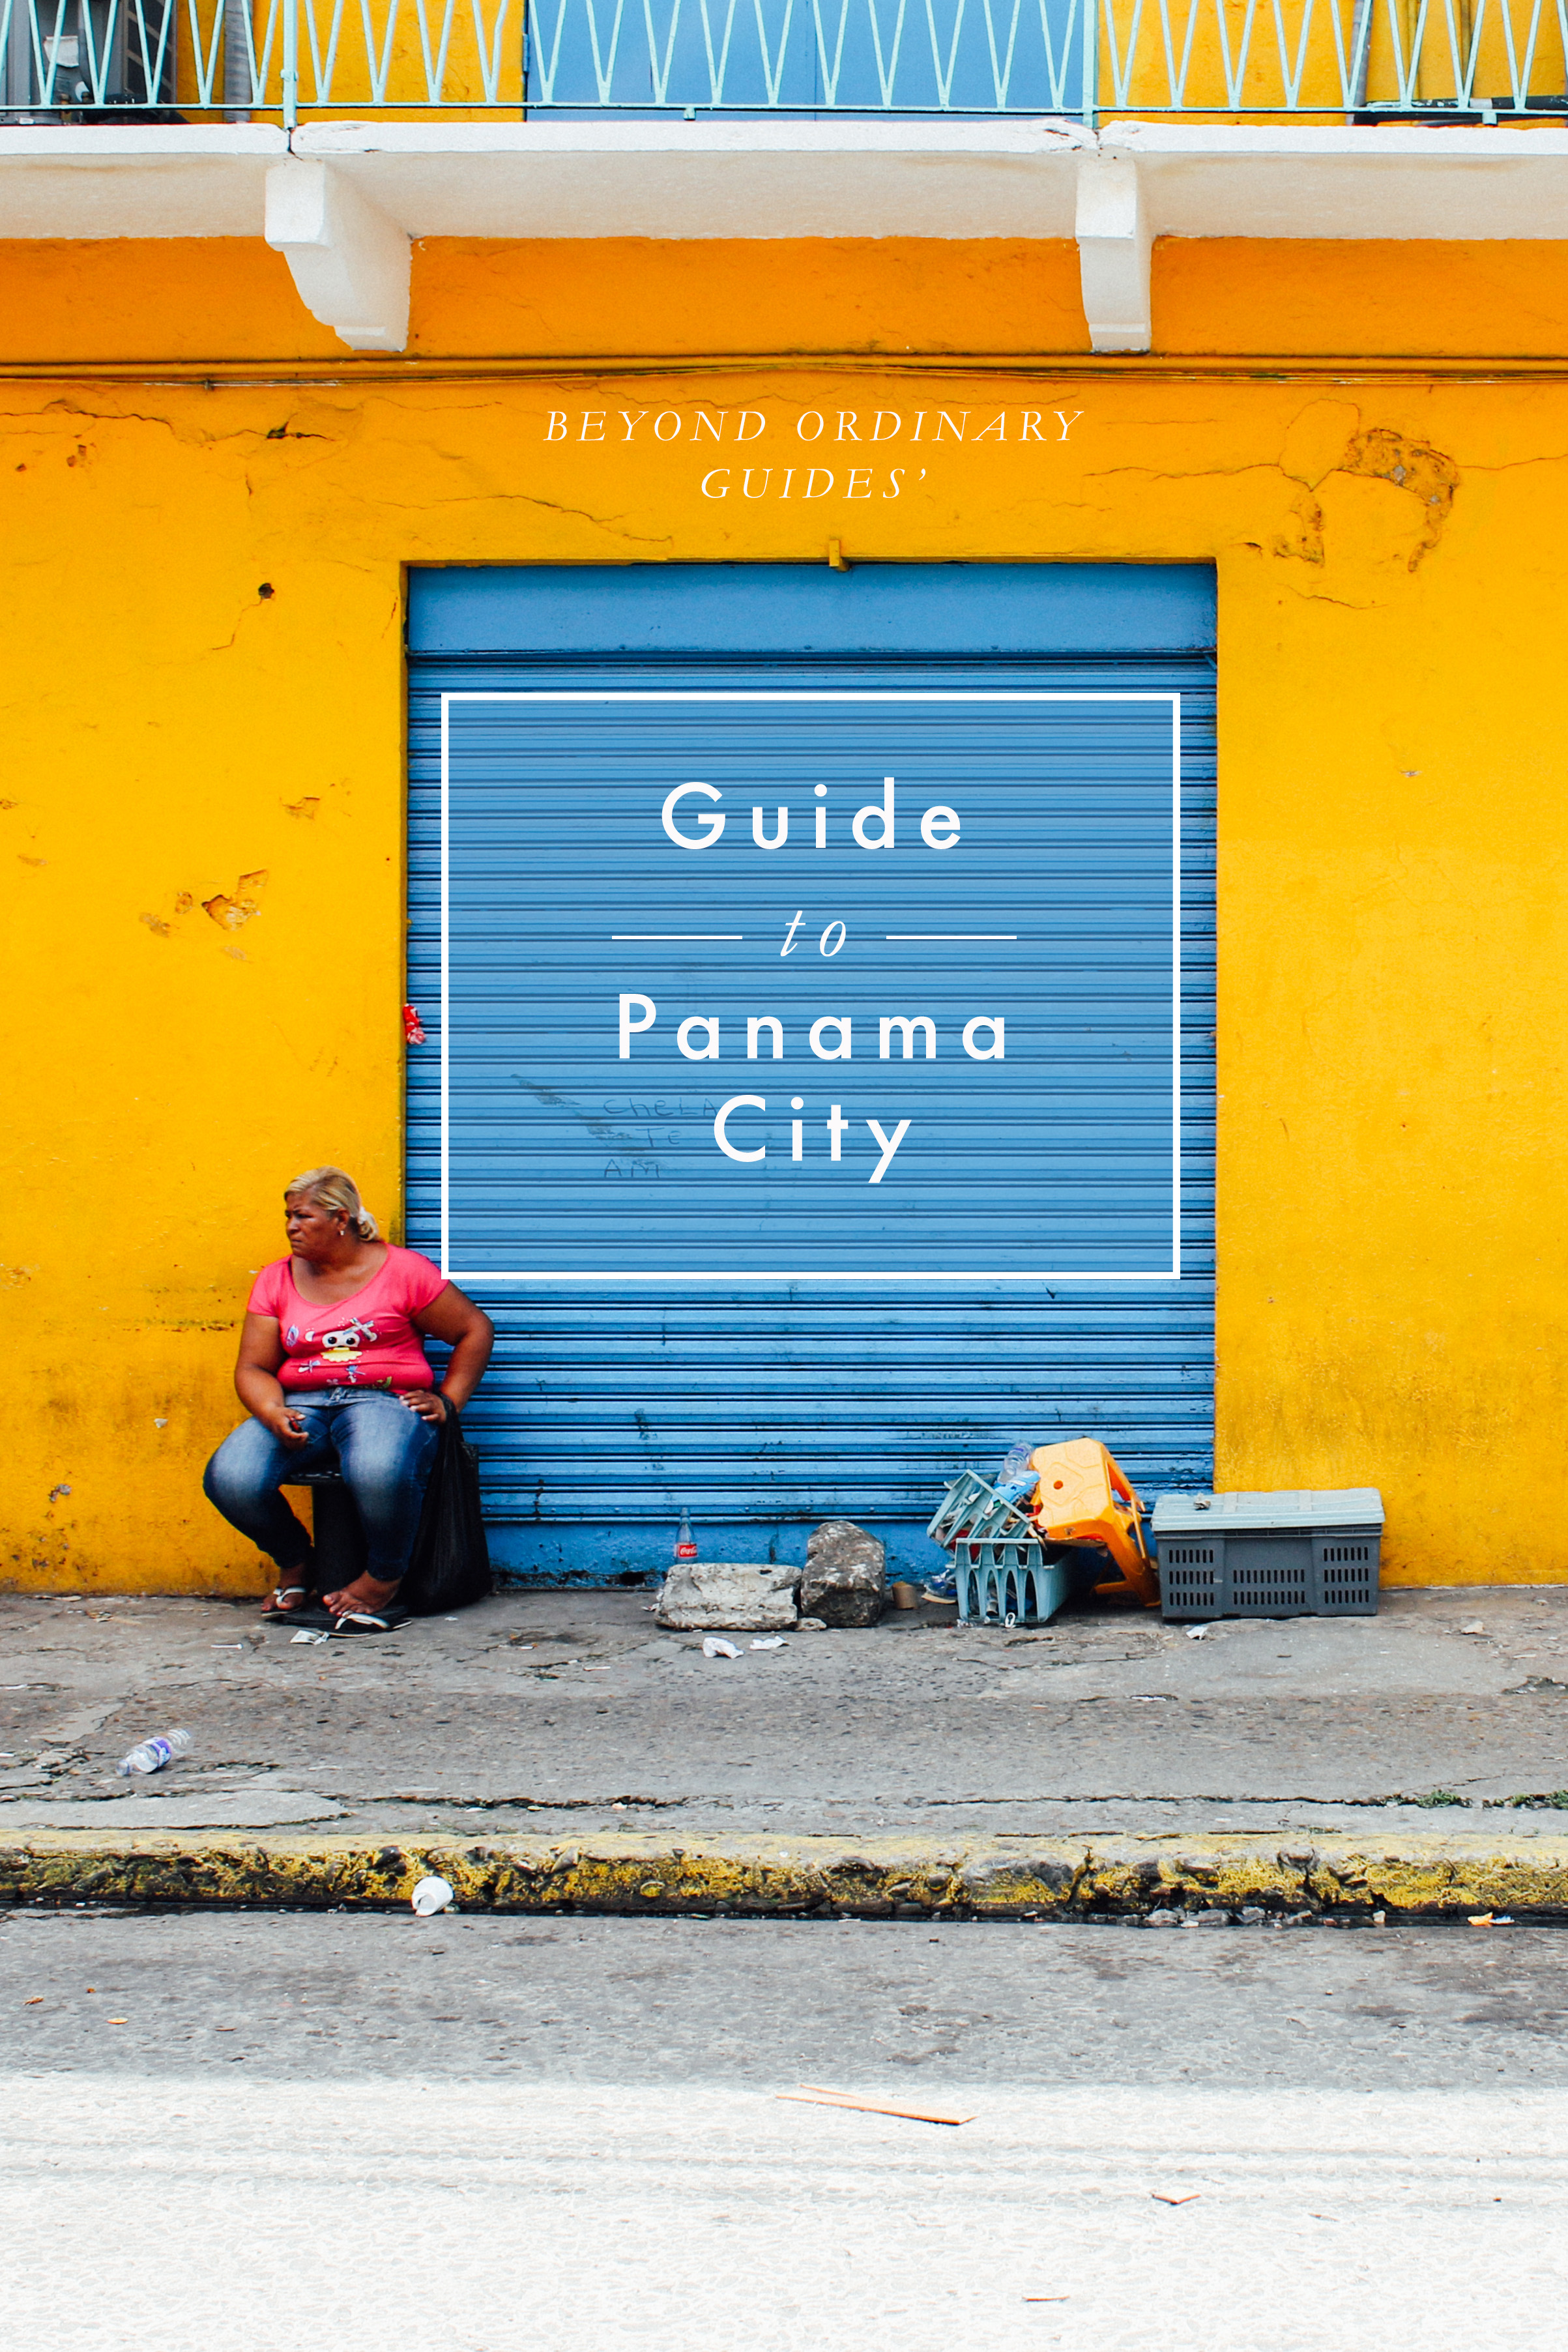 Beyond Ordinary Guides' Guide to Panama City